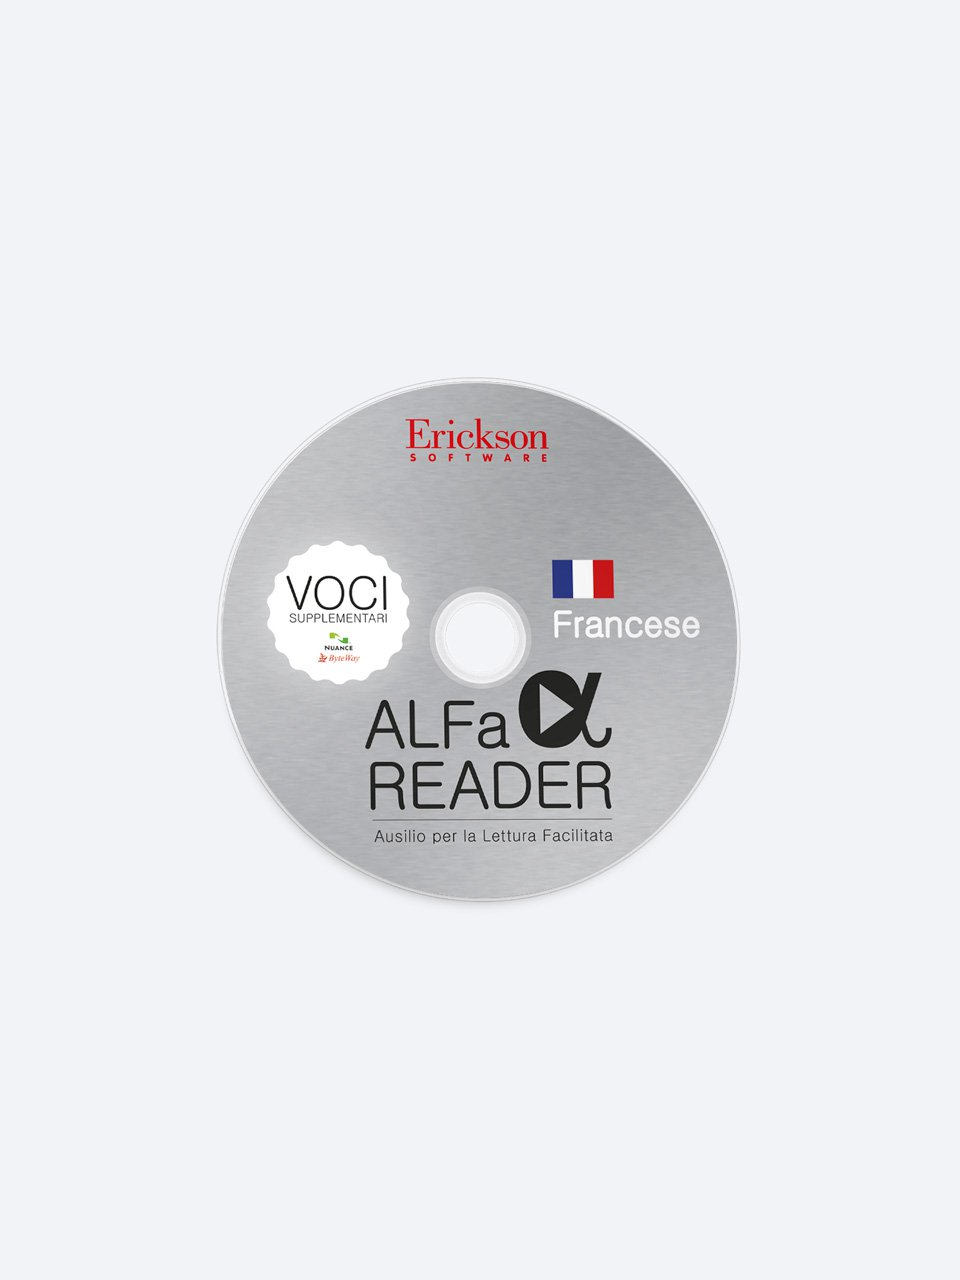 ALFa READER 3 - App e software - Erickson